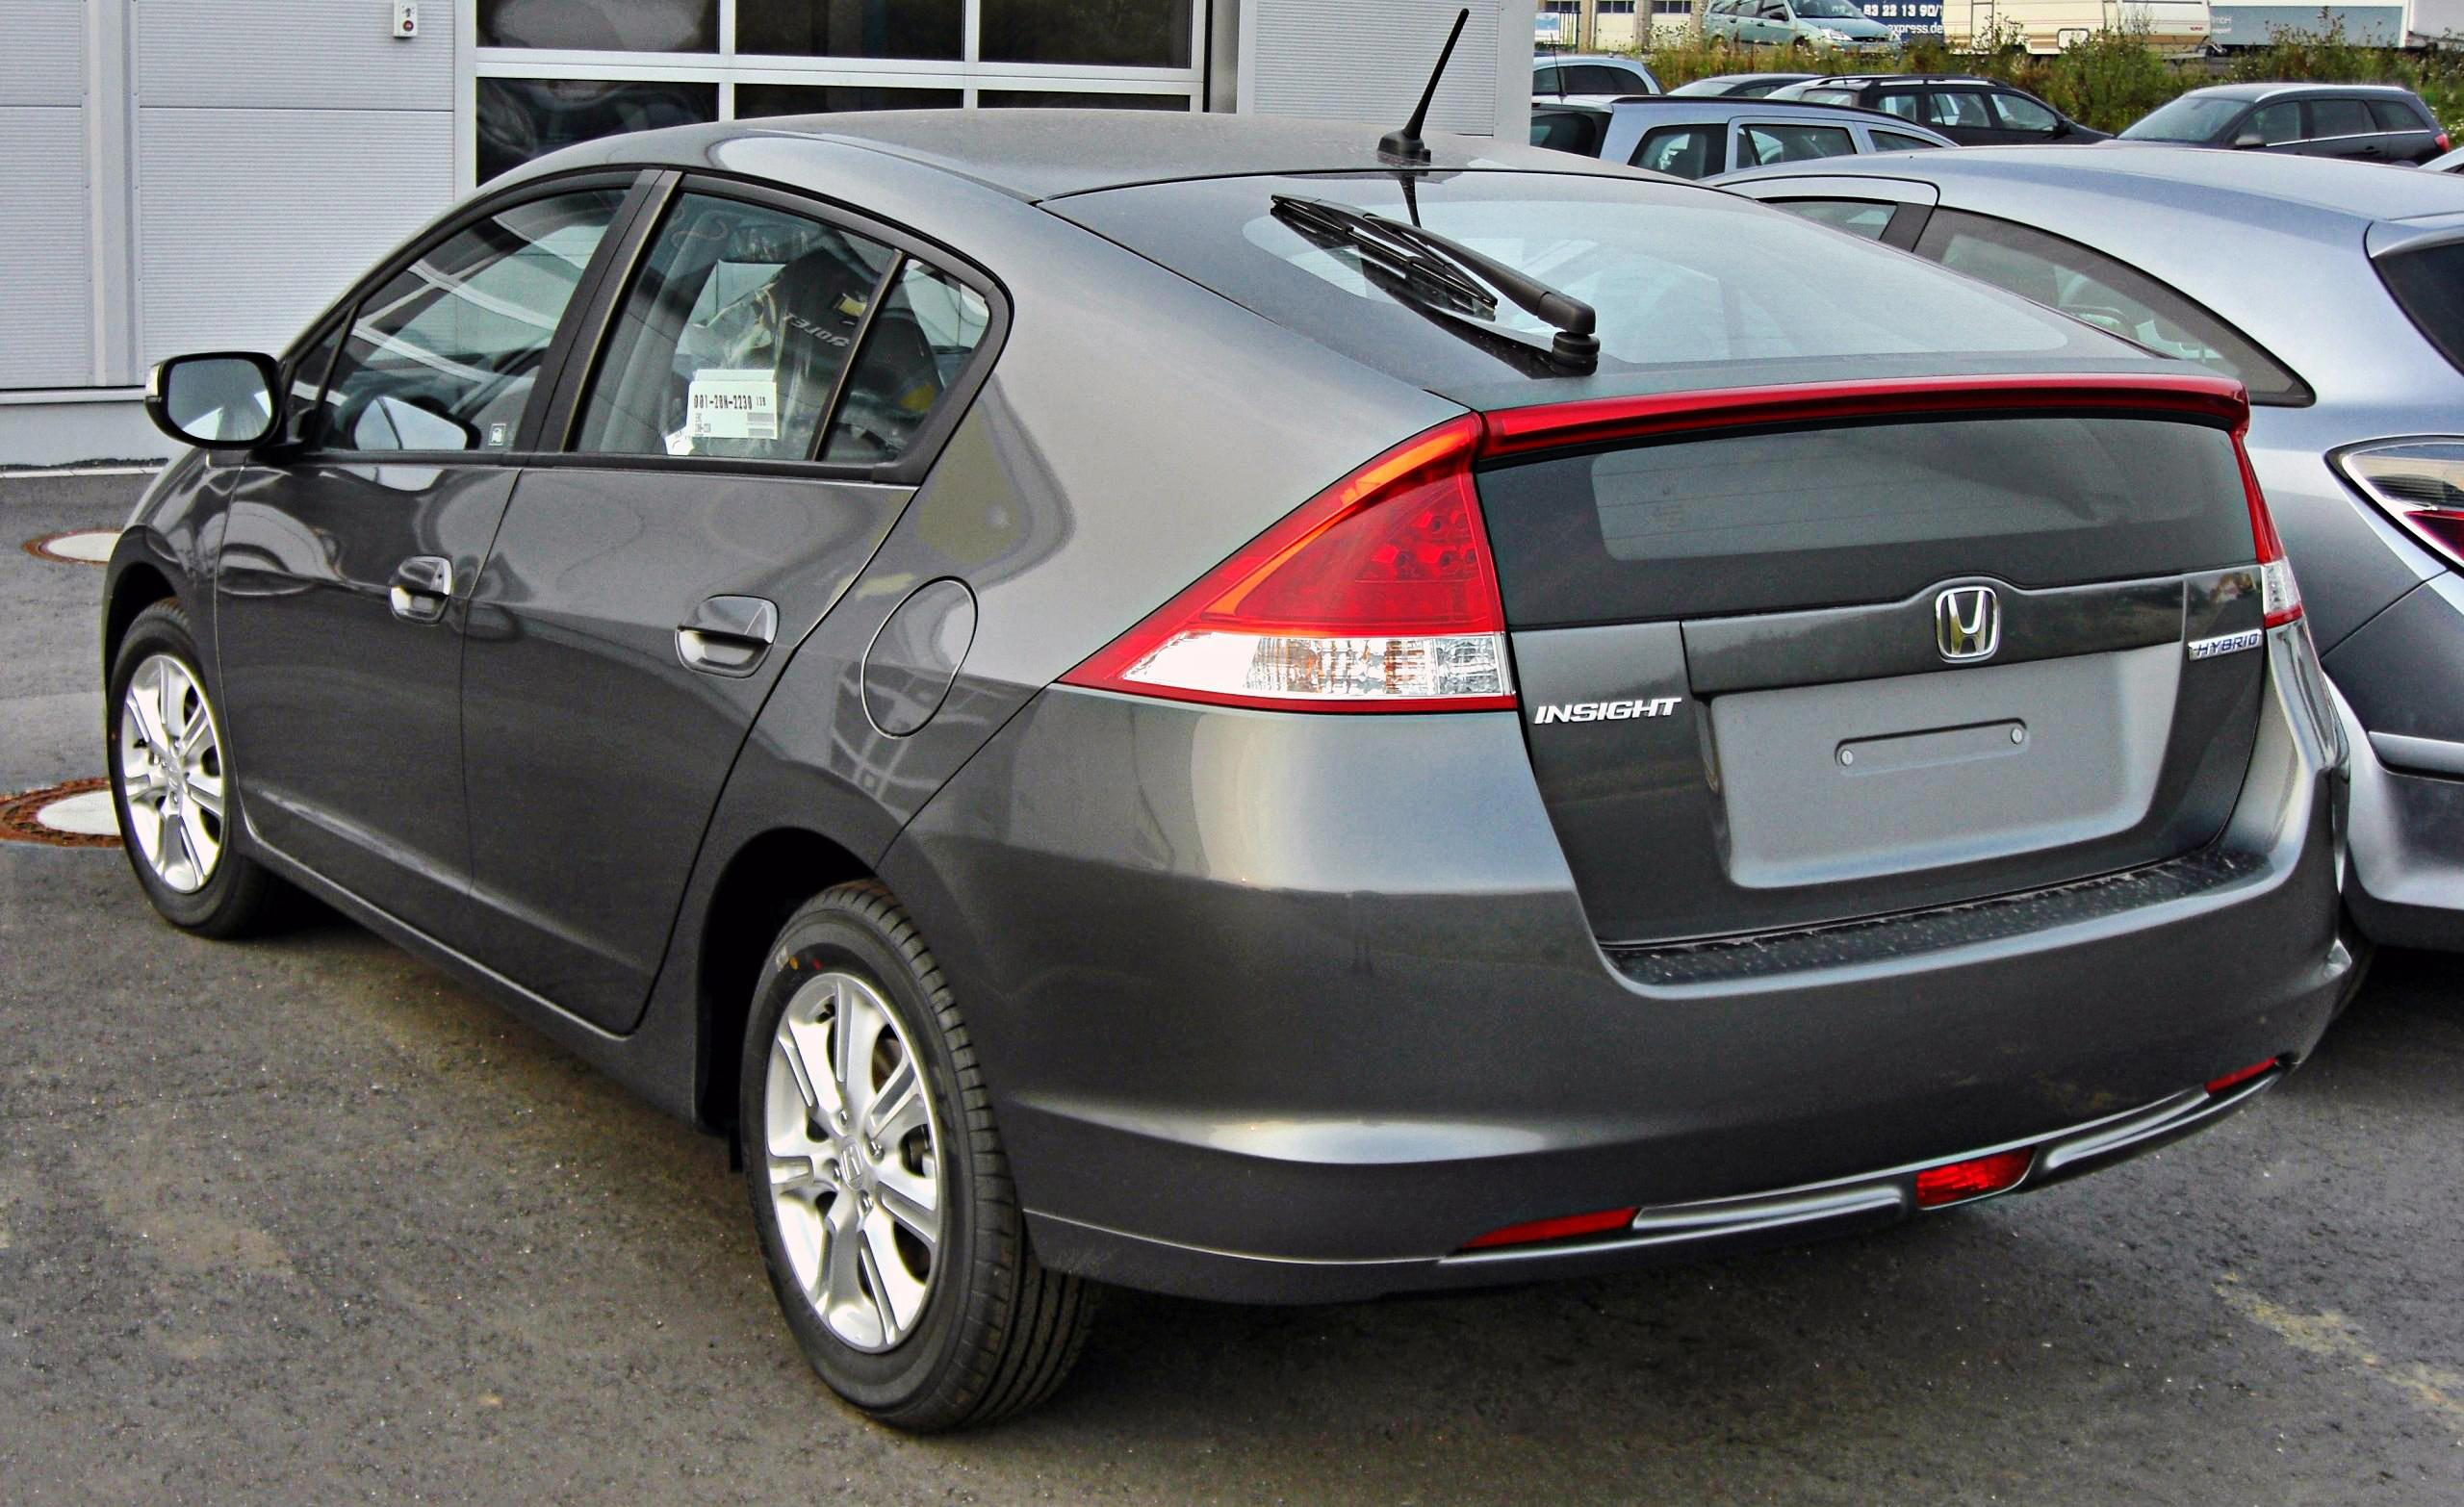 2016 Honda Insight ii - pictures, information and specs ...